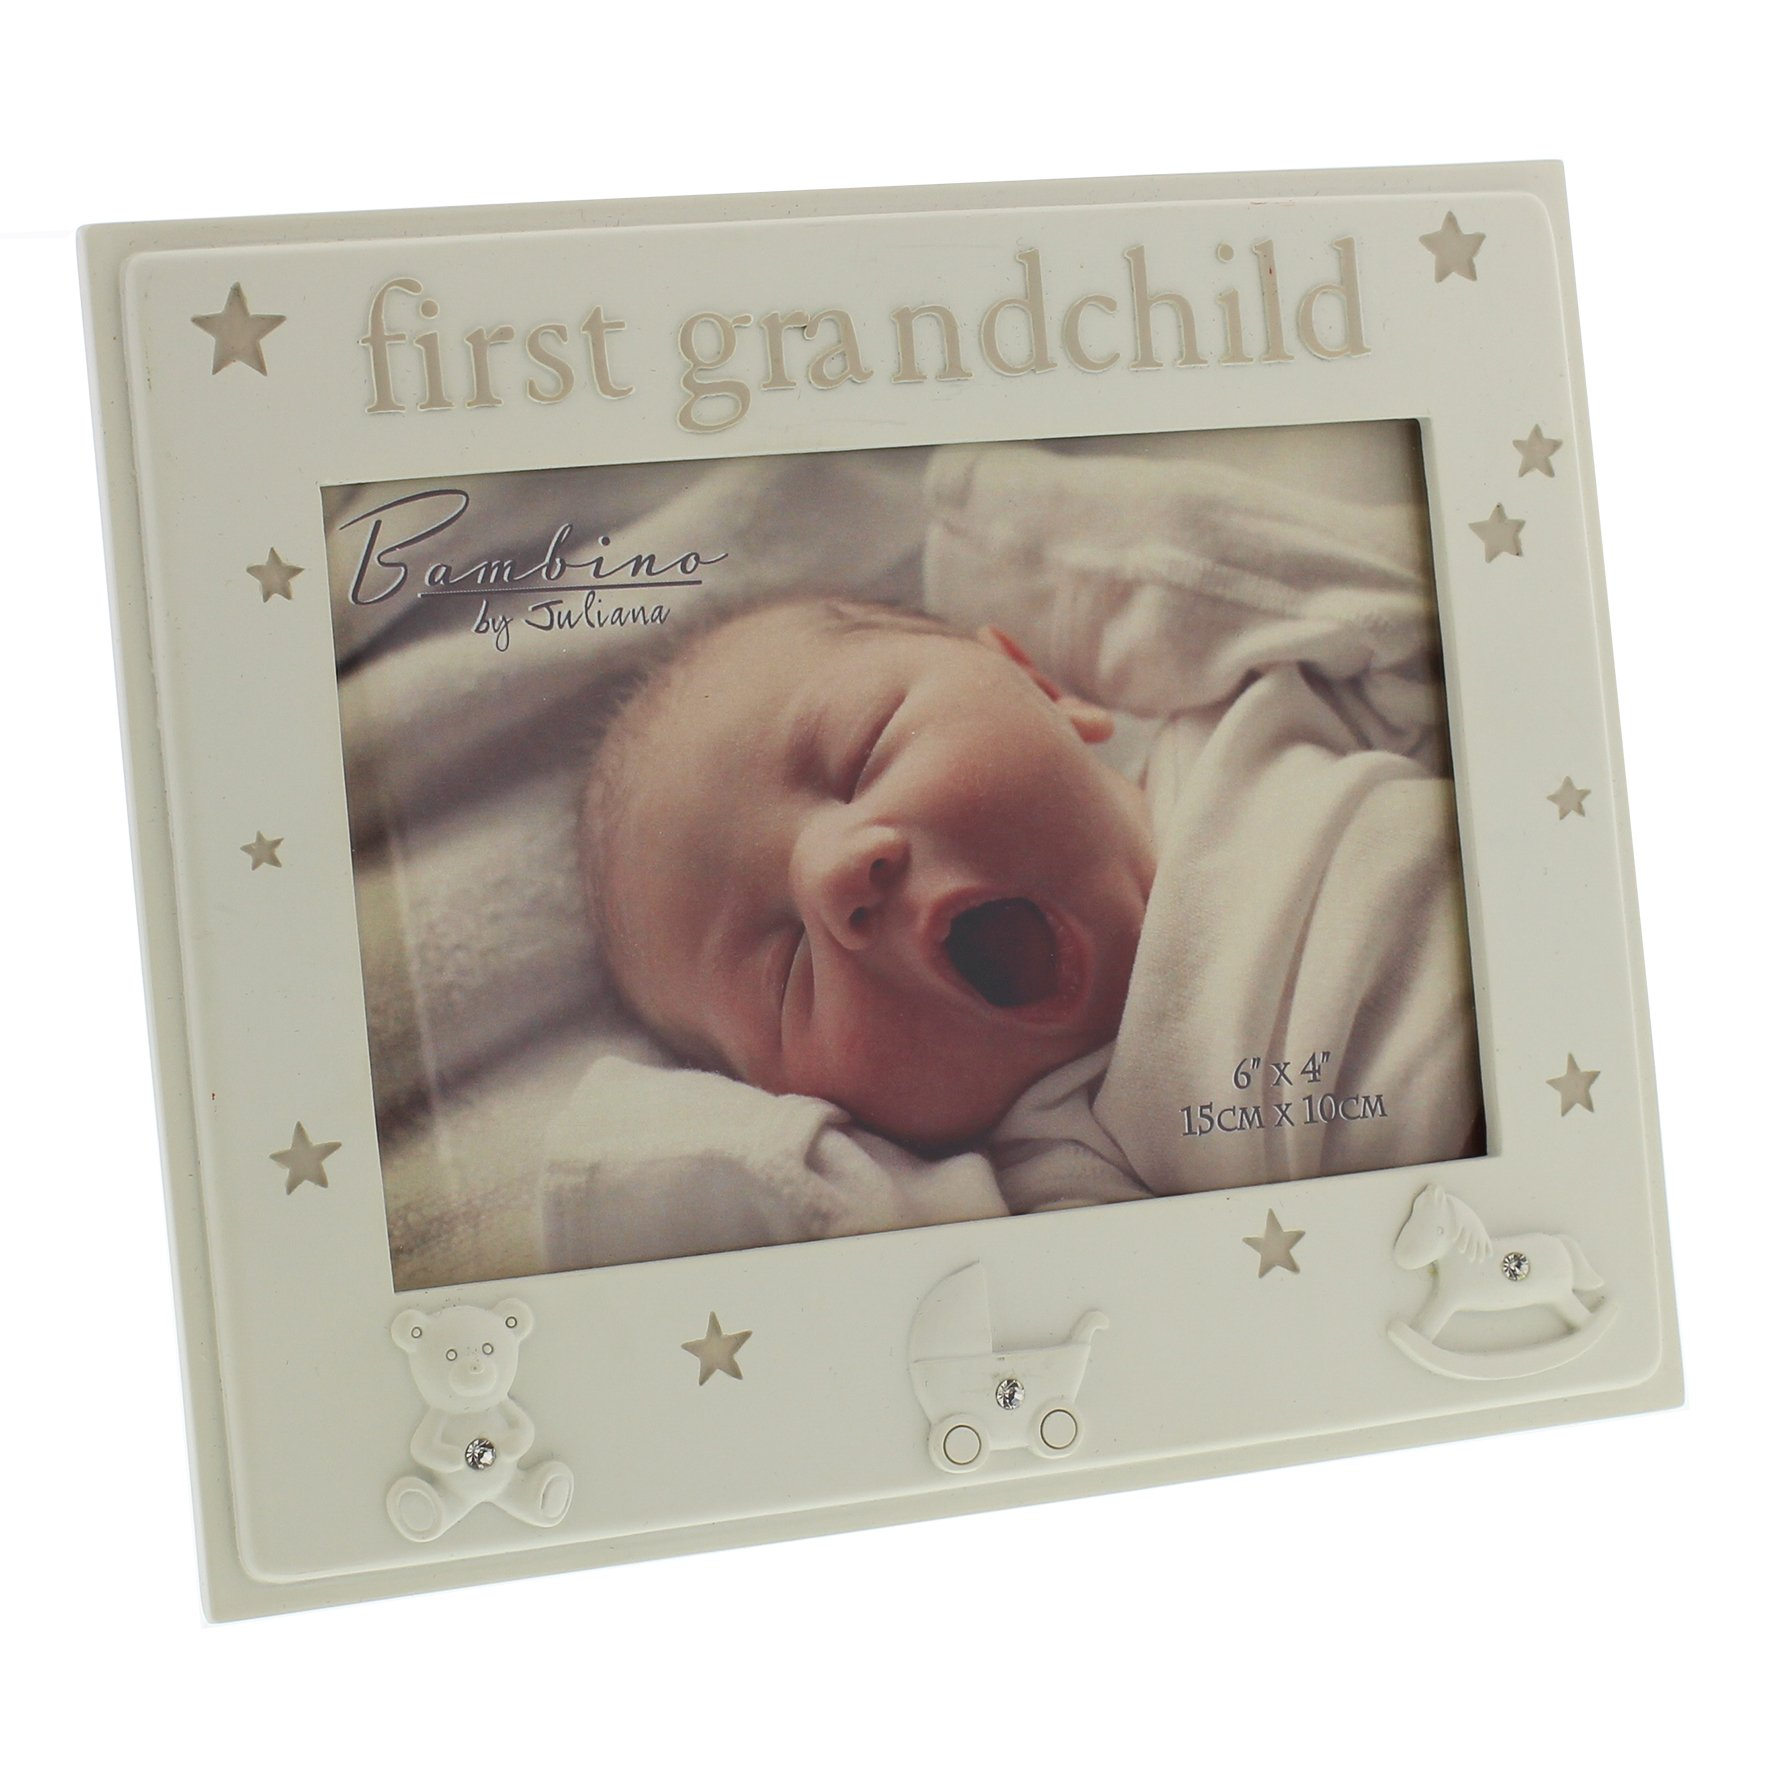 Oaktree Gifts First Grandchild Resin Photo Frame 6 x 4